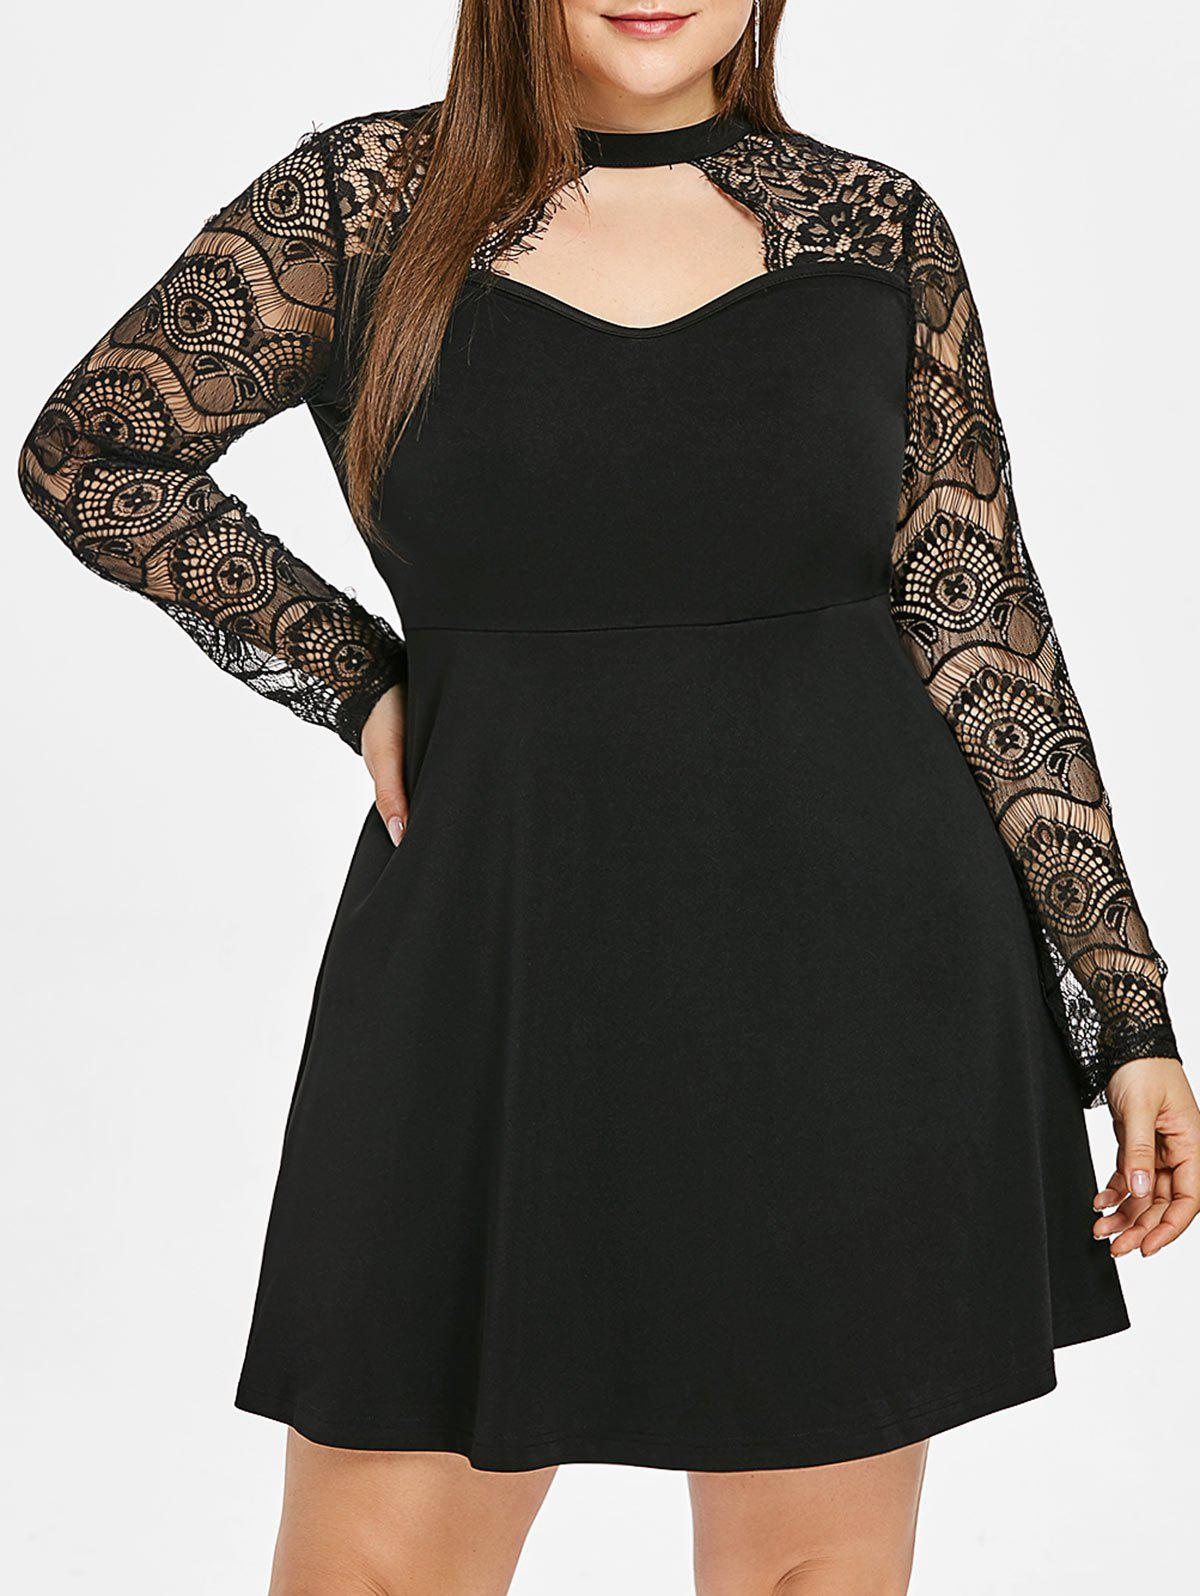 50% OFF] Cut Out Plus Size Lace Sleeve A Line Dress | Rosegal